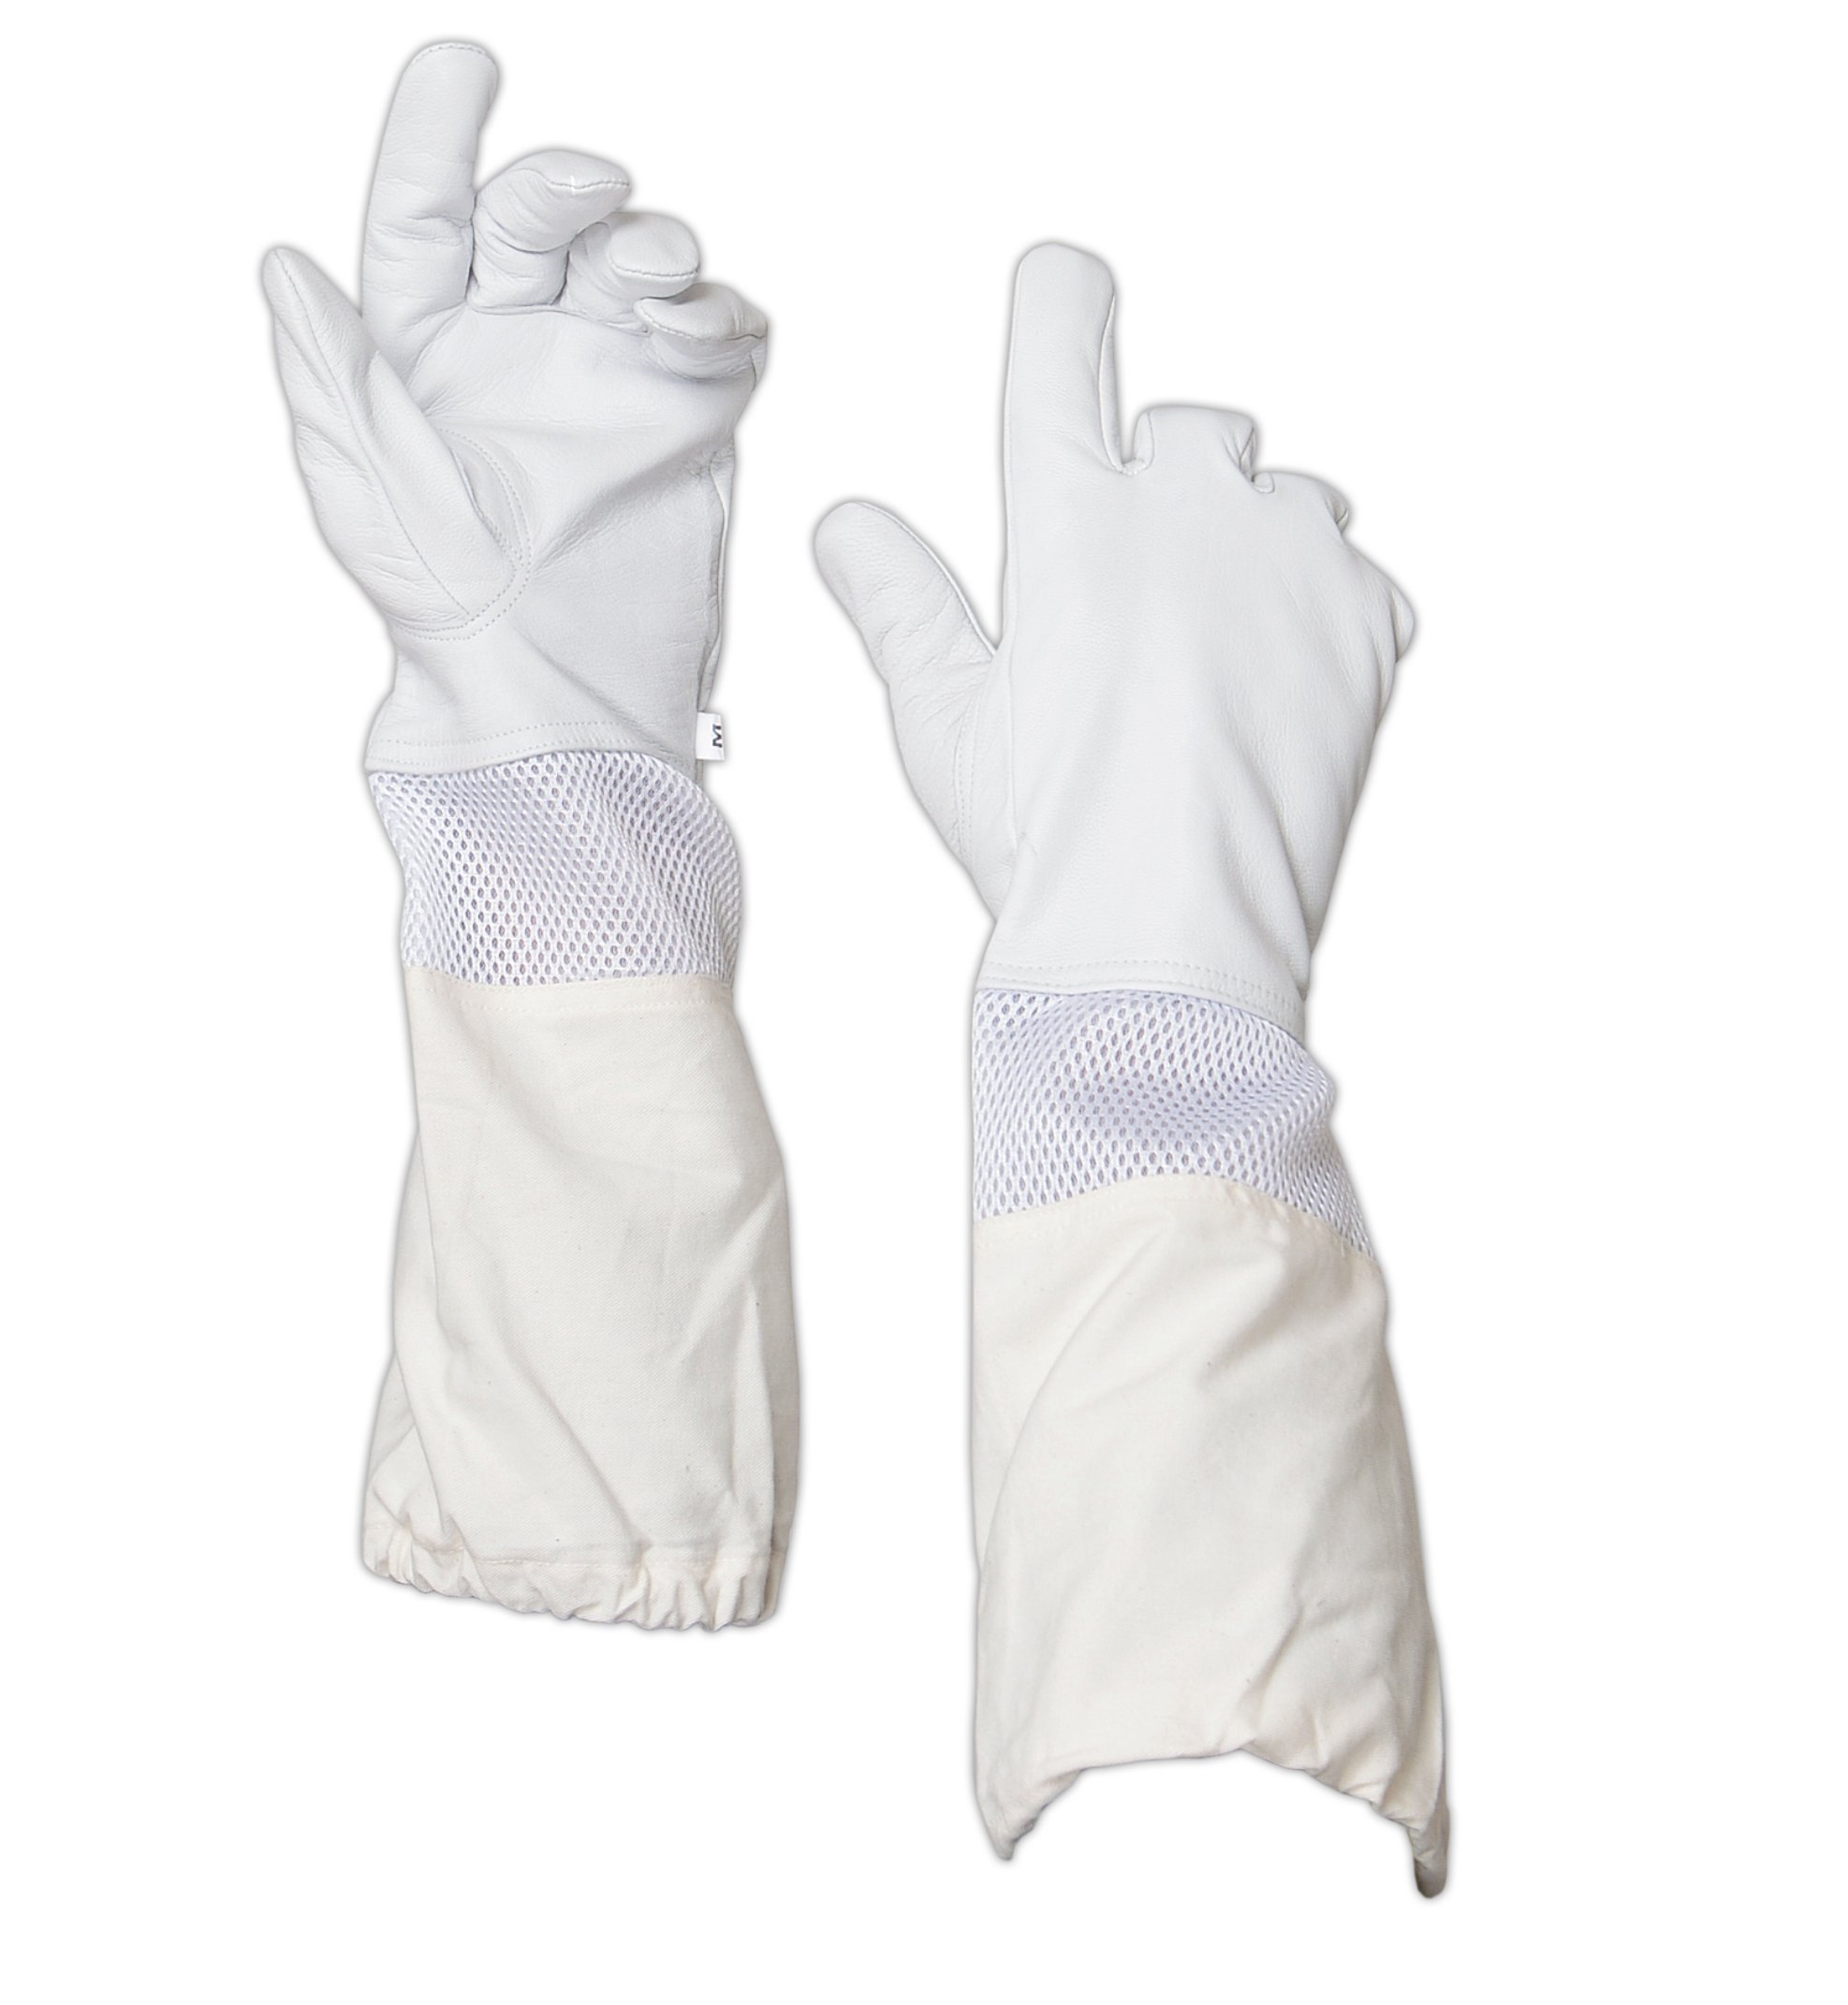 FOREST BEEKEEPING SUPPLY Forest Beekeeping Premium Goatskin Leather Beekeeper's Glove with white vent Long Canvas Sleeve with elastic cuff (L) by FOREST BEEKEEPING SUPPLY